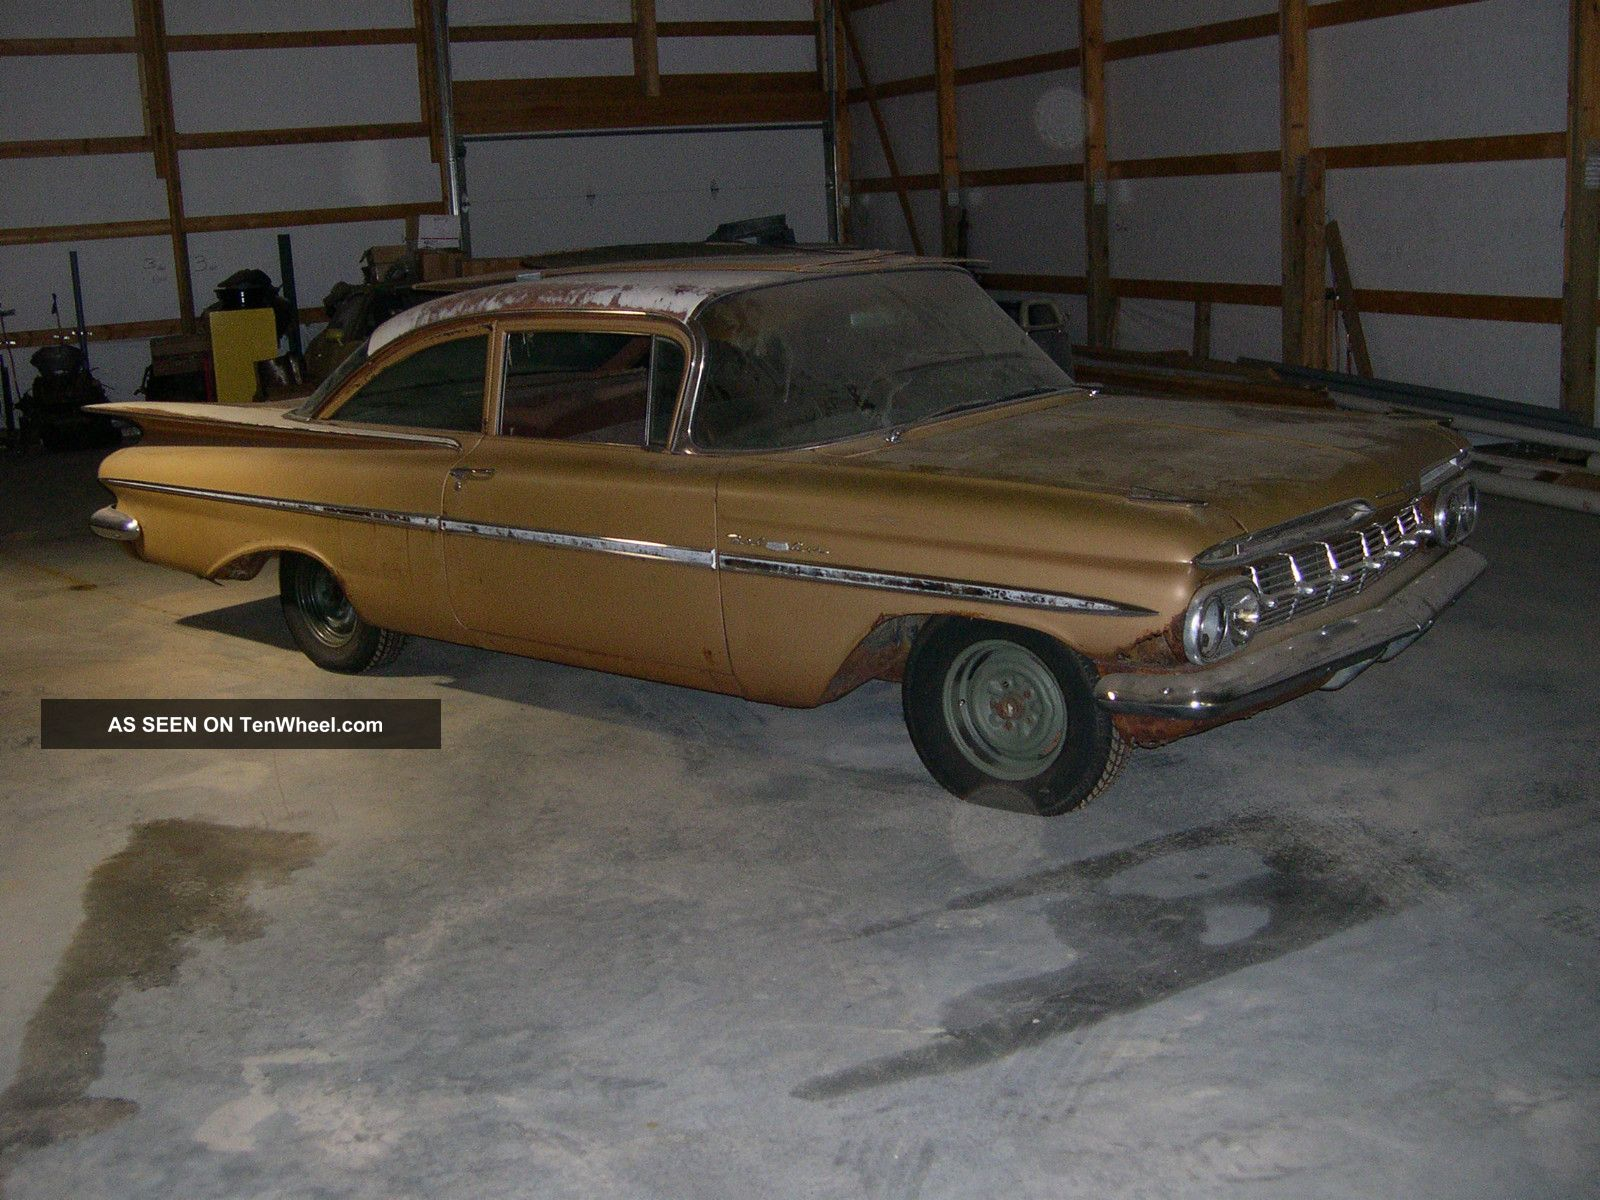 1959 Chevrolet Bel Air Impala Hot Rod Project Car 6 Cylinder 3 Speed Bel Air/150/210 photo